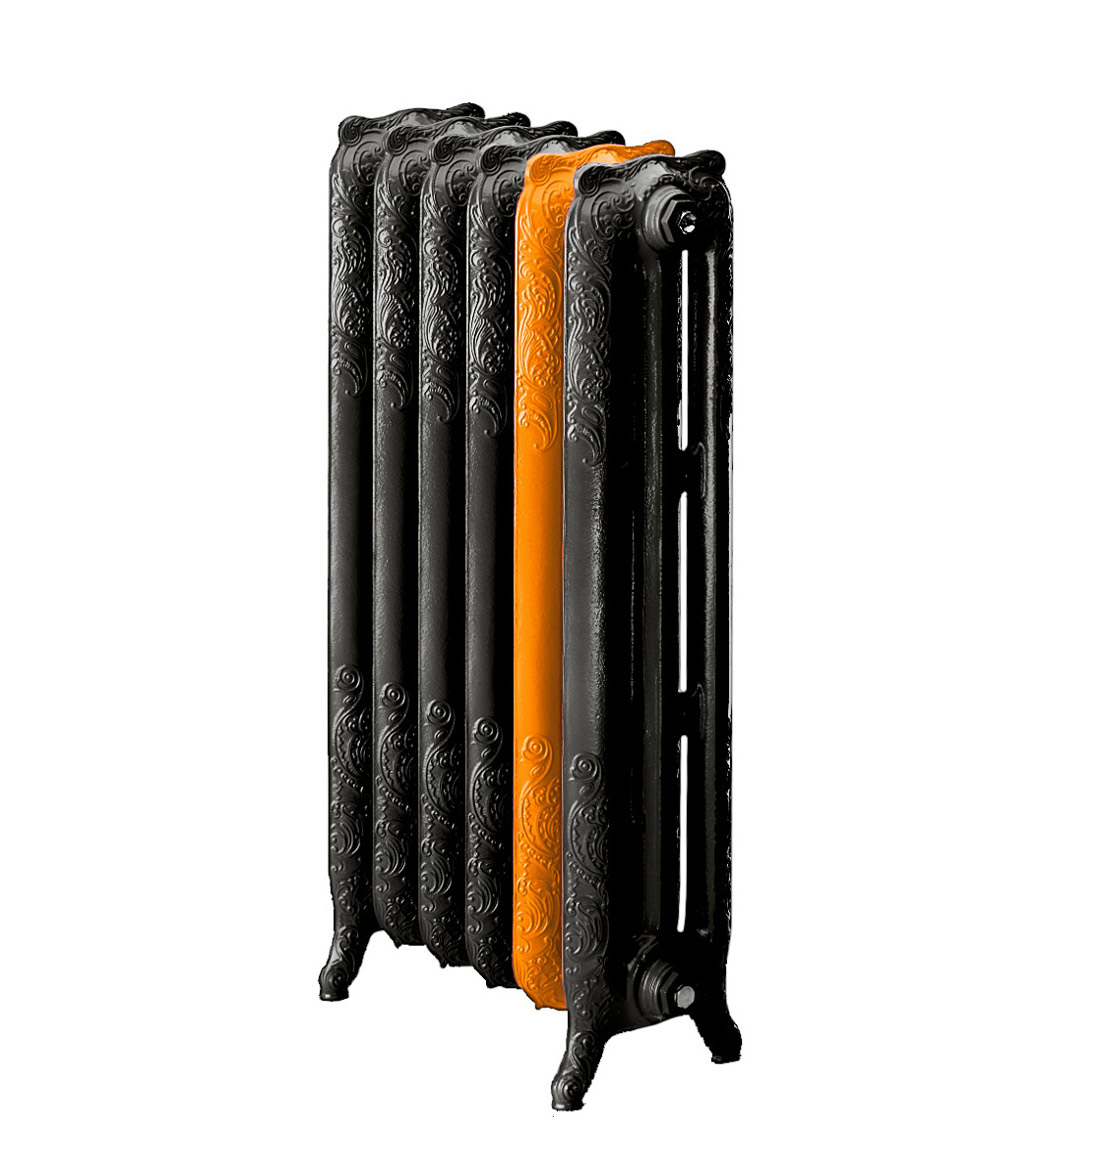 tiffany radiator by scirocco h